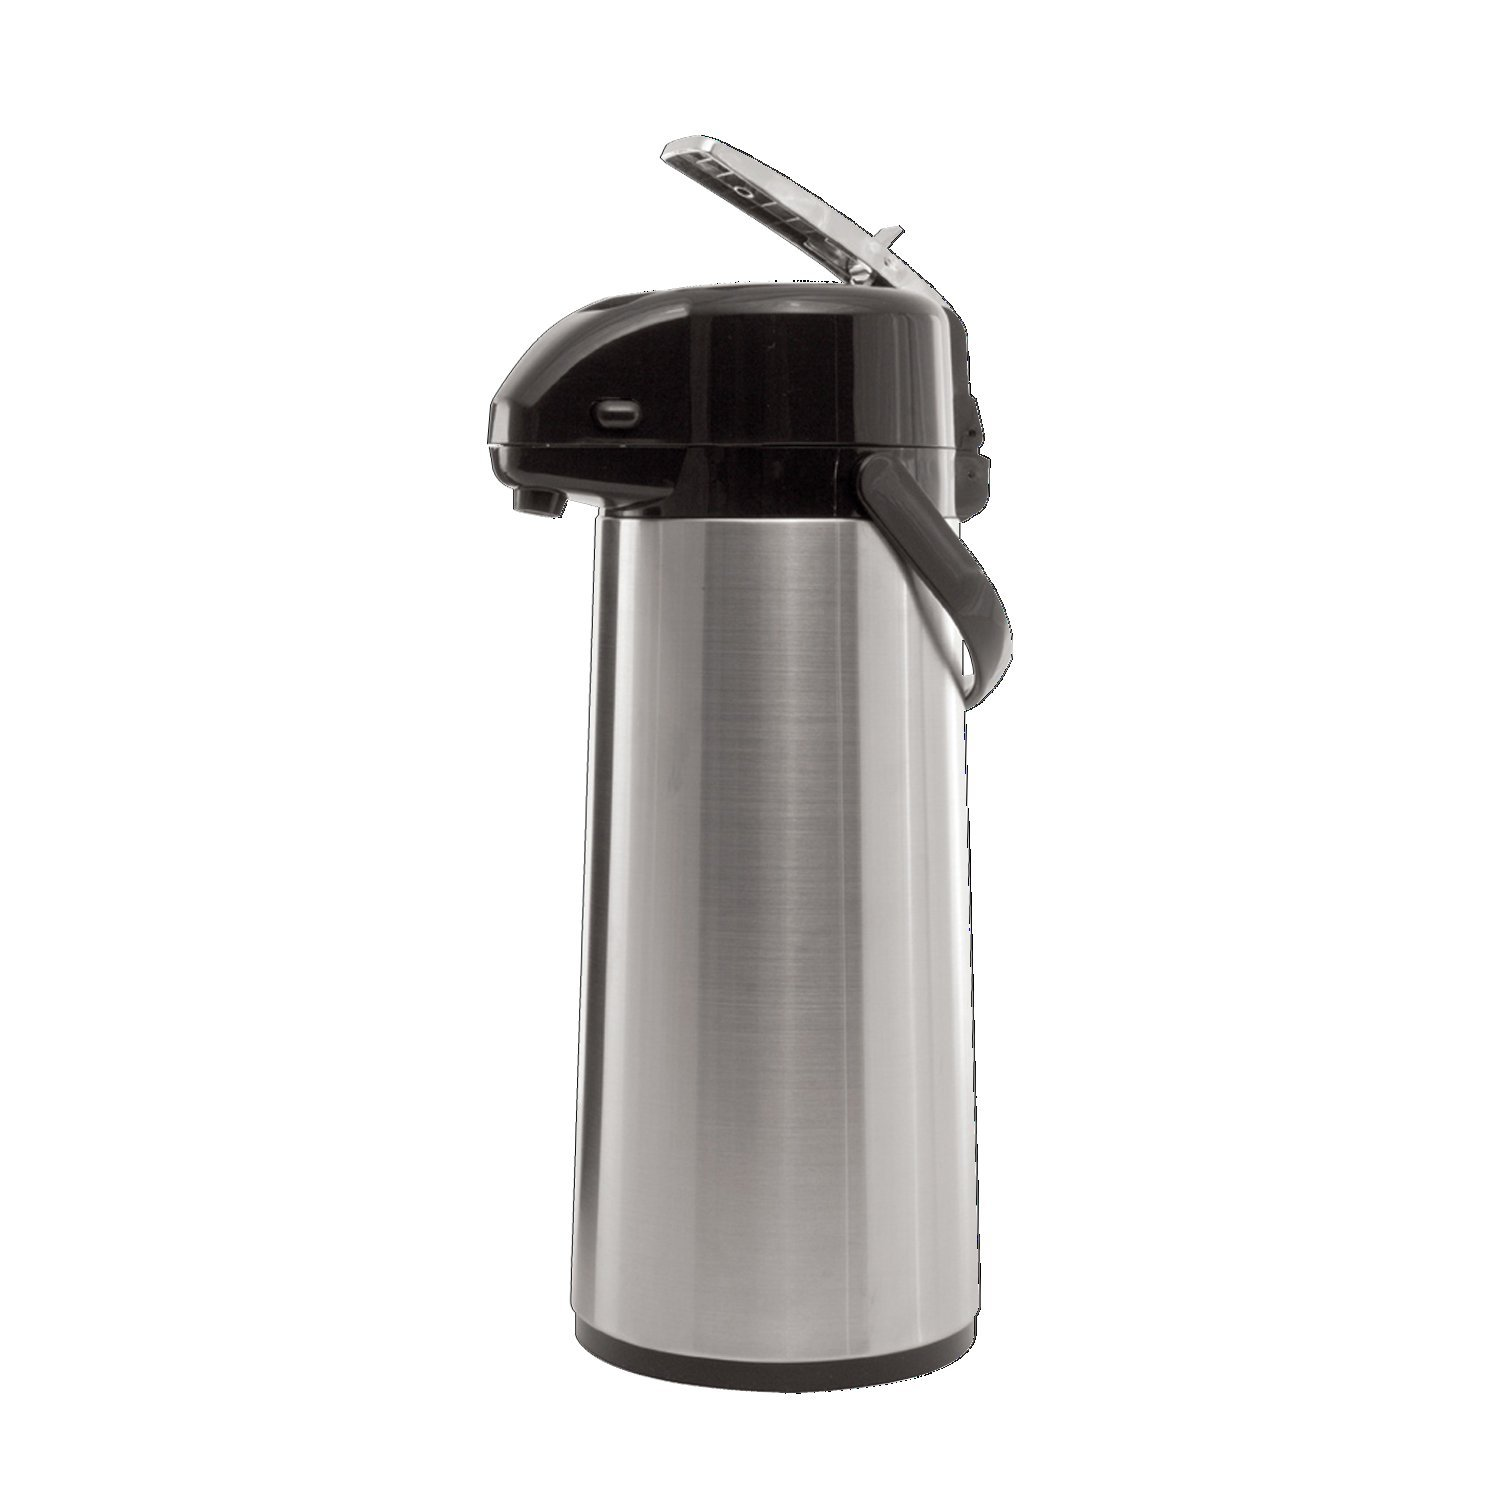 Service Ideas AYS30S Economy Airpot with Lever, Stainless Steel Lined, 3 L